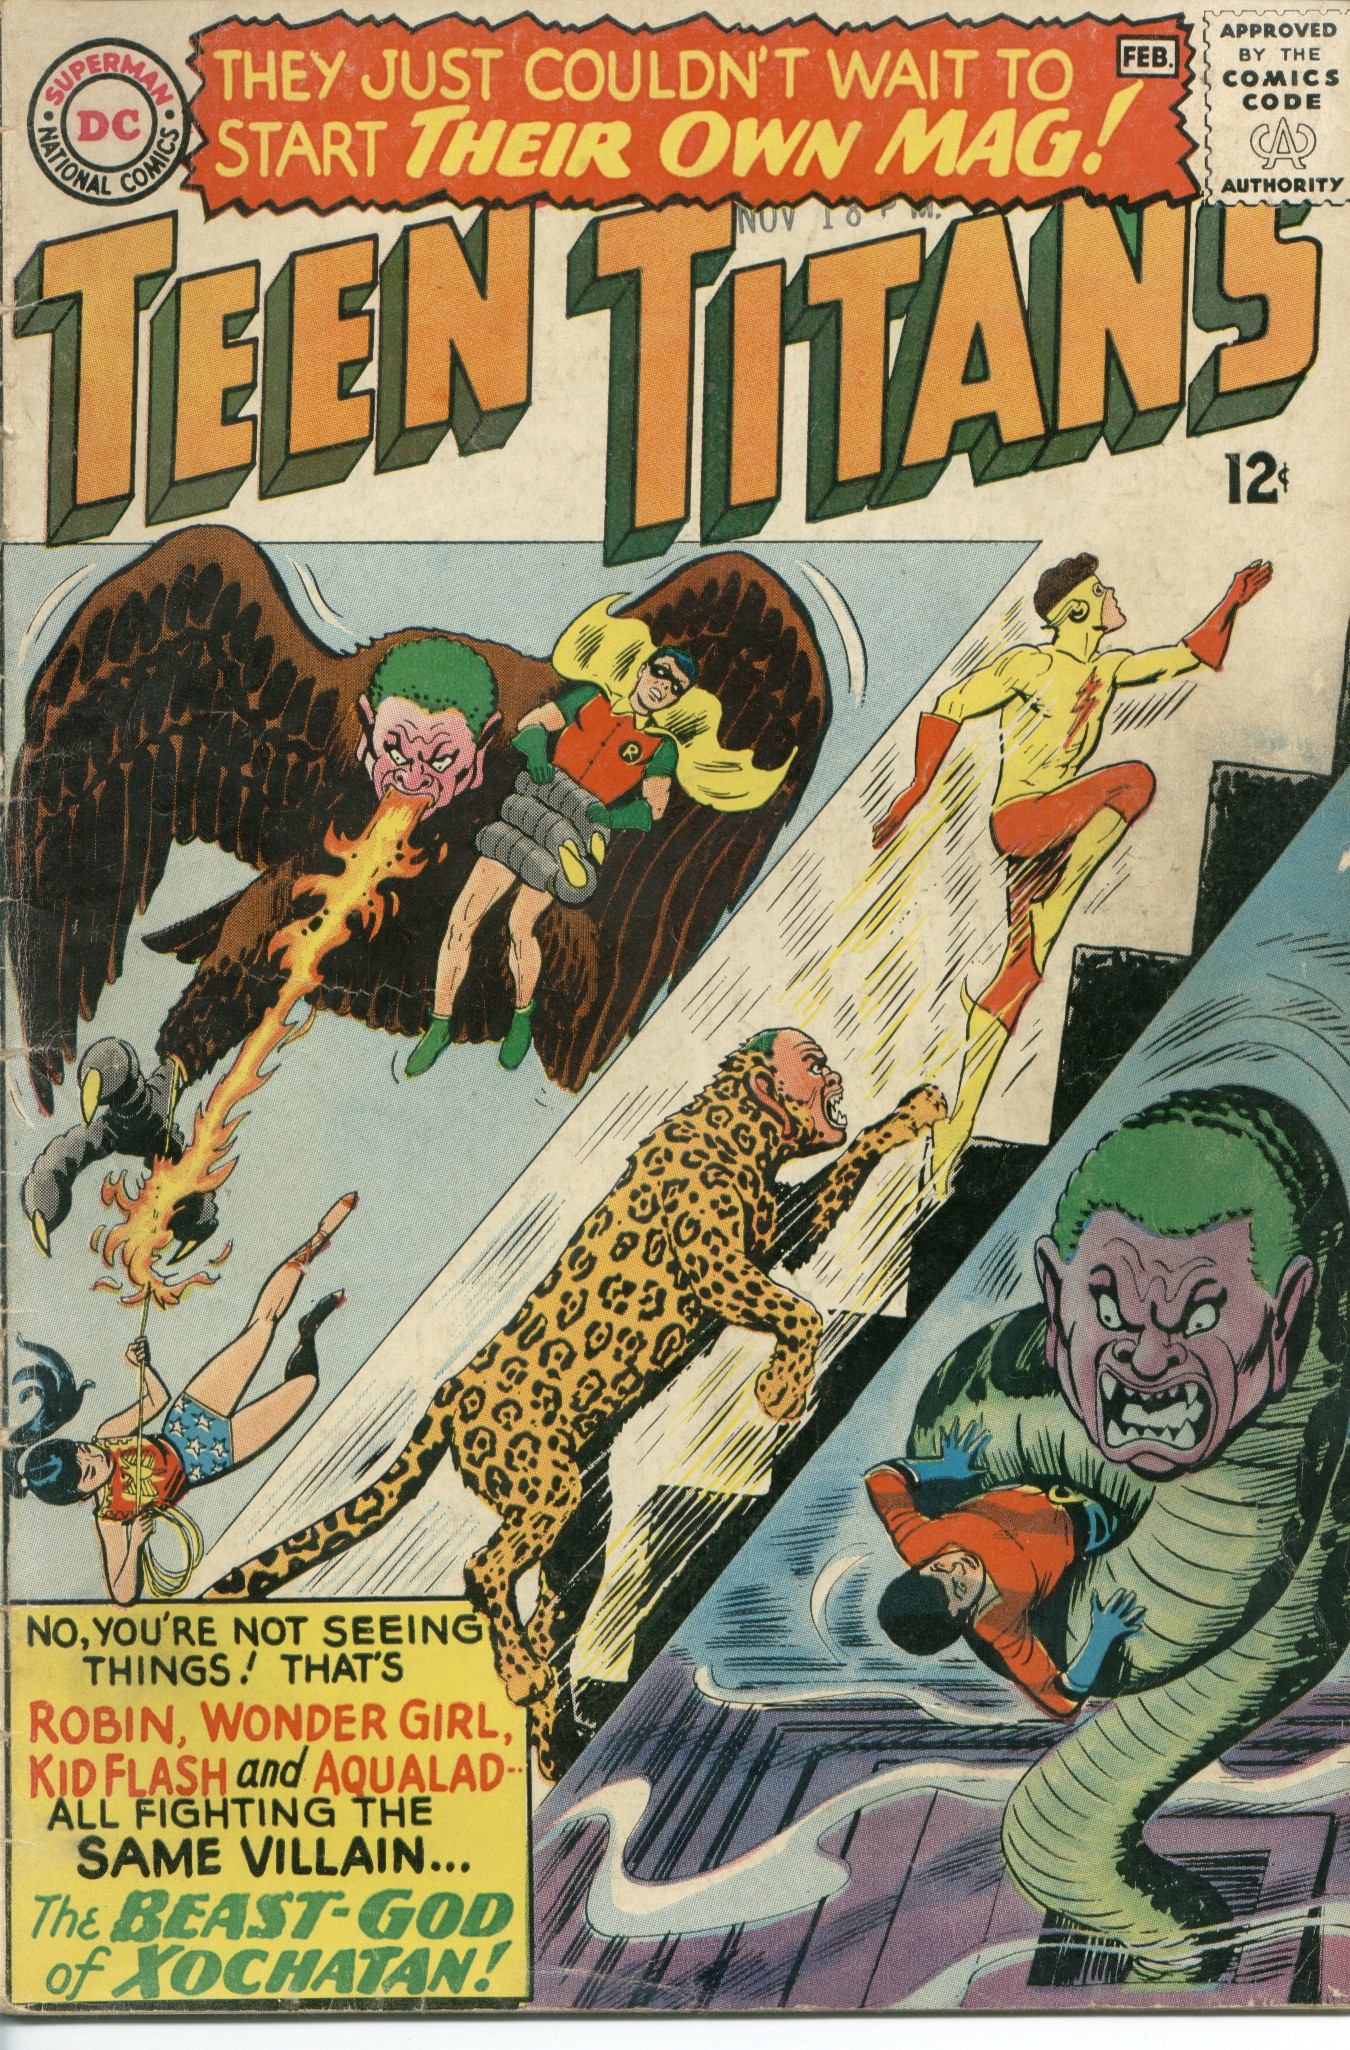 Teen Titans (1966) #1, cover by Nick Cardy.